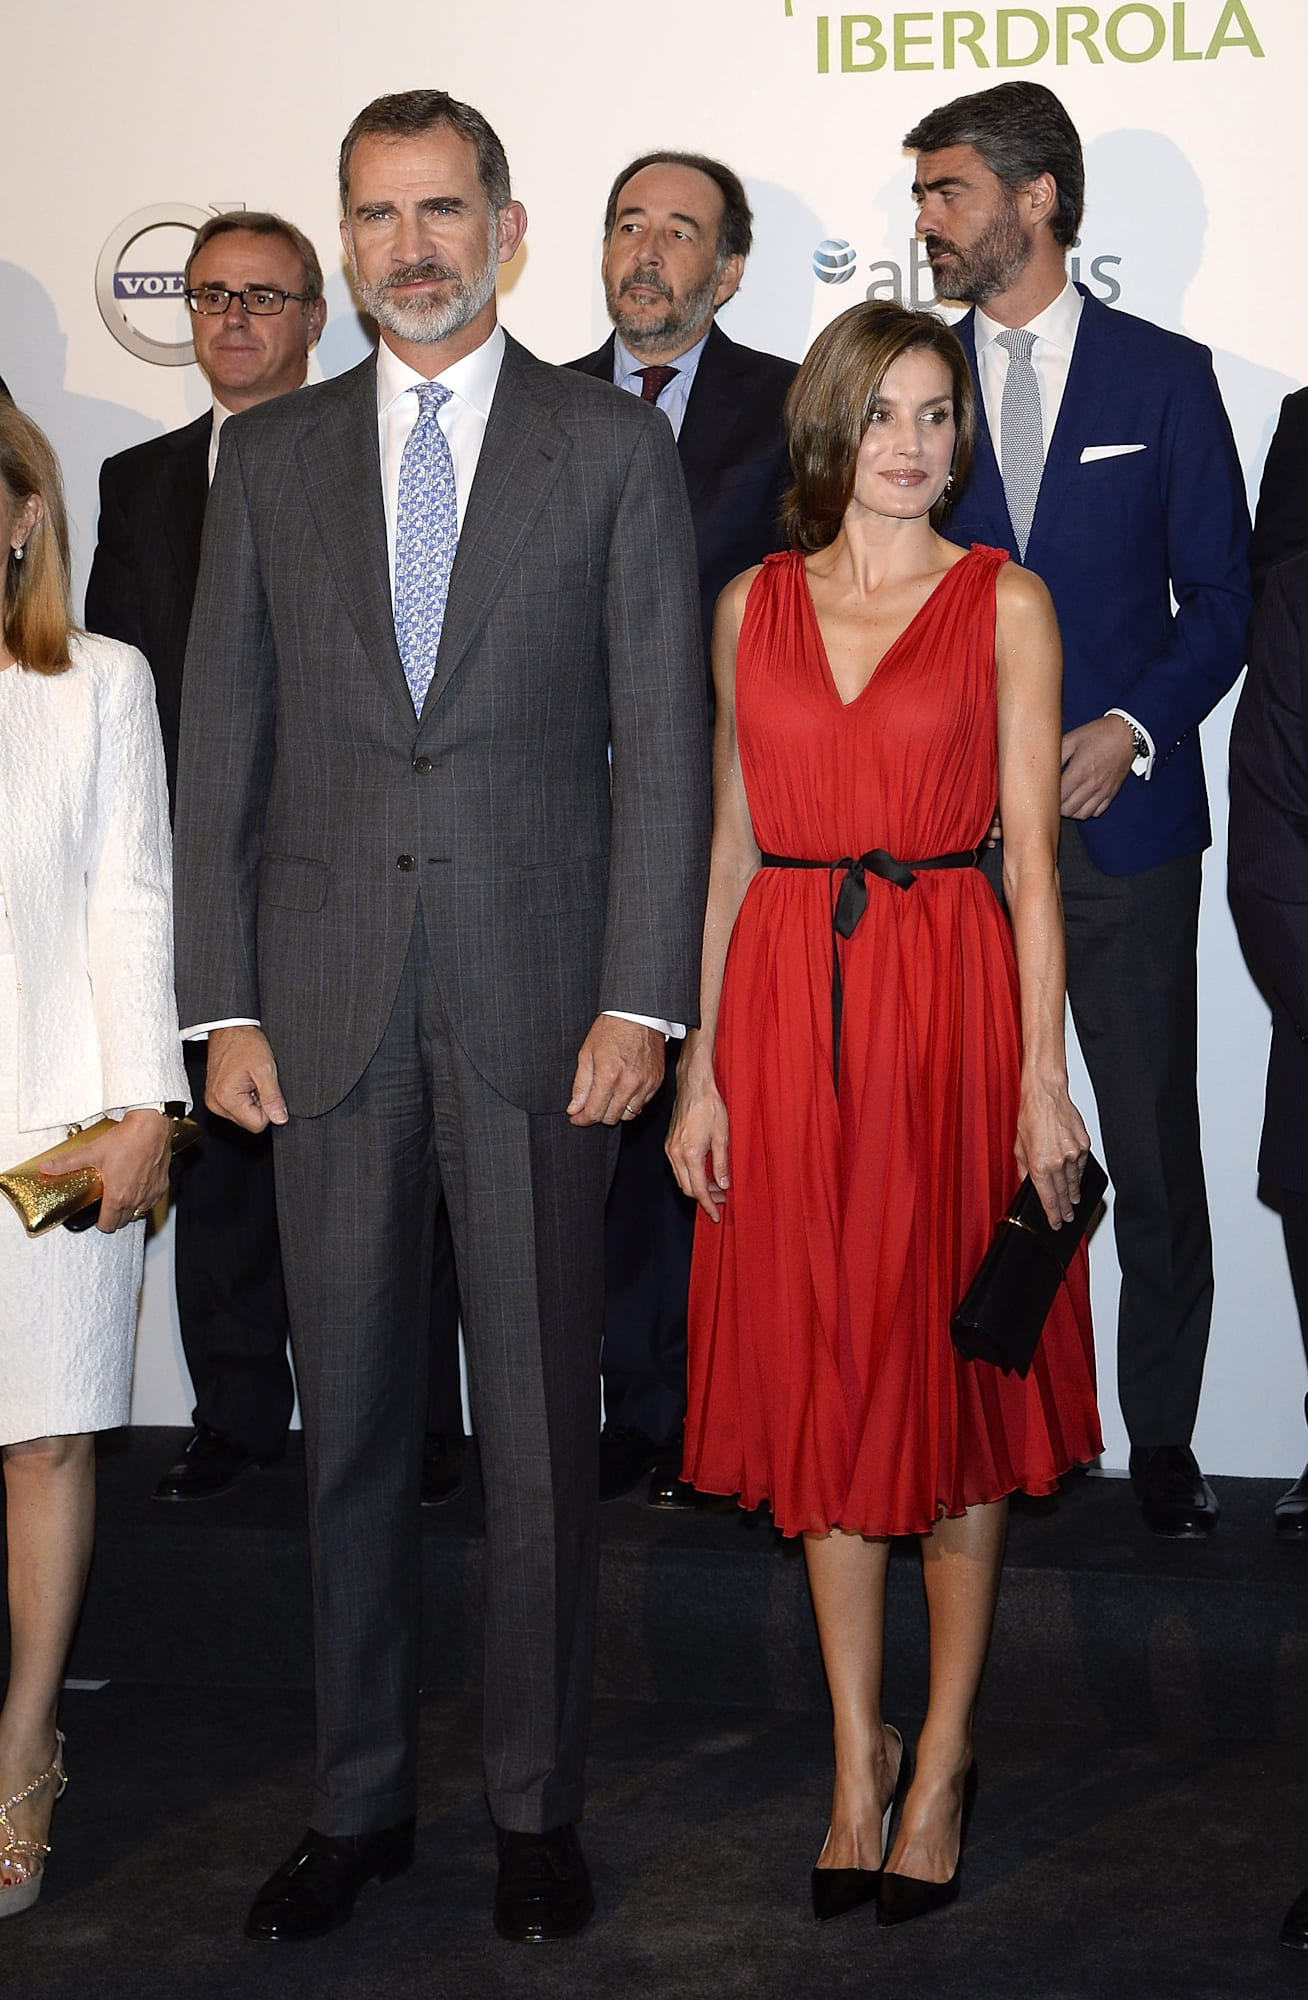 Spanish Royals Attend Vocento Anniversary Concert